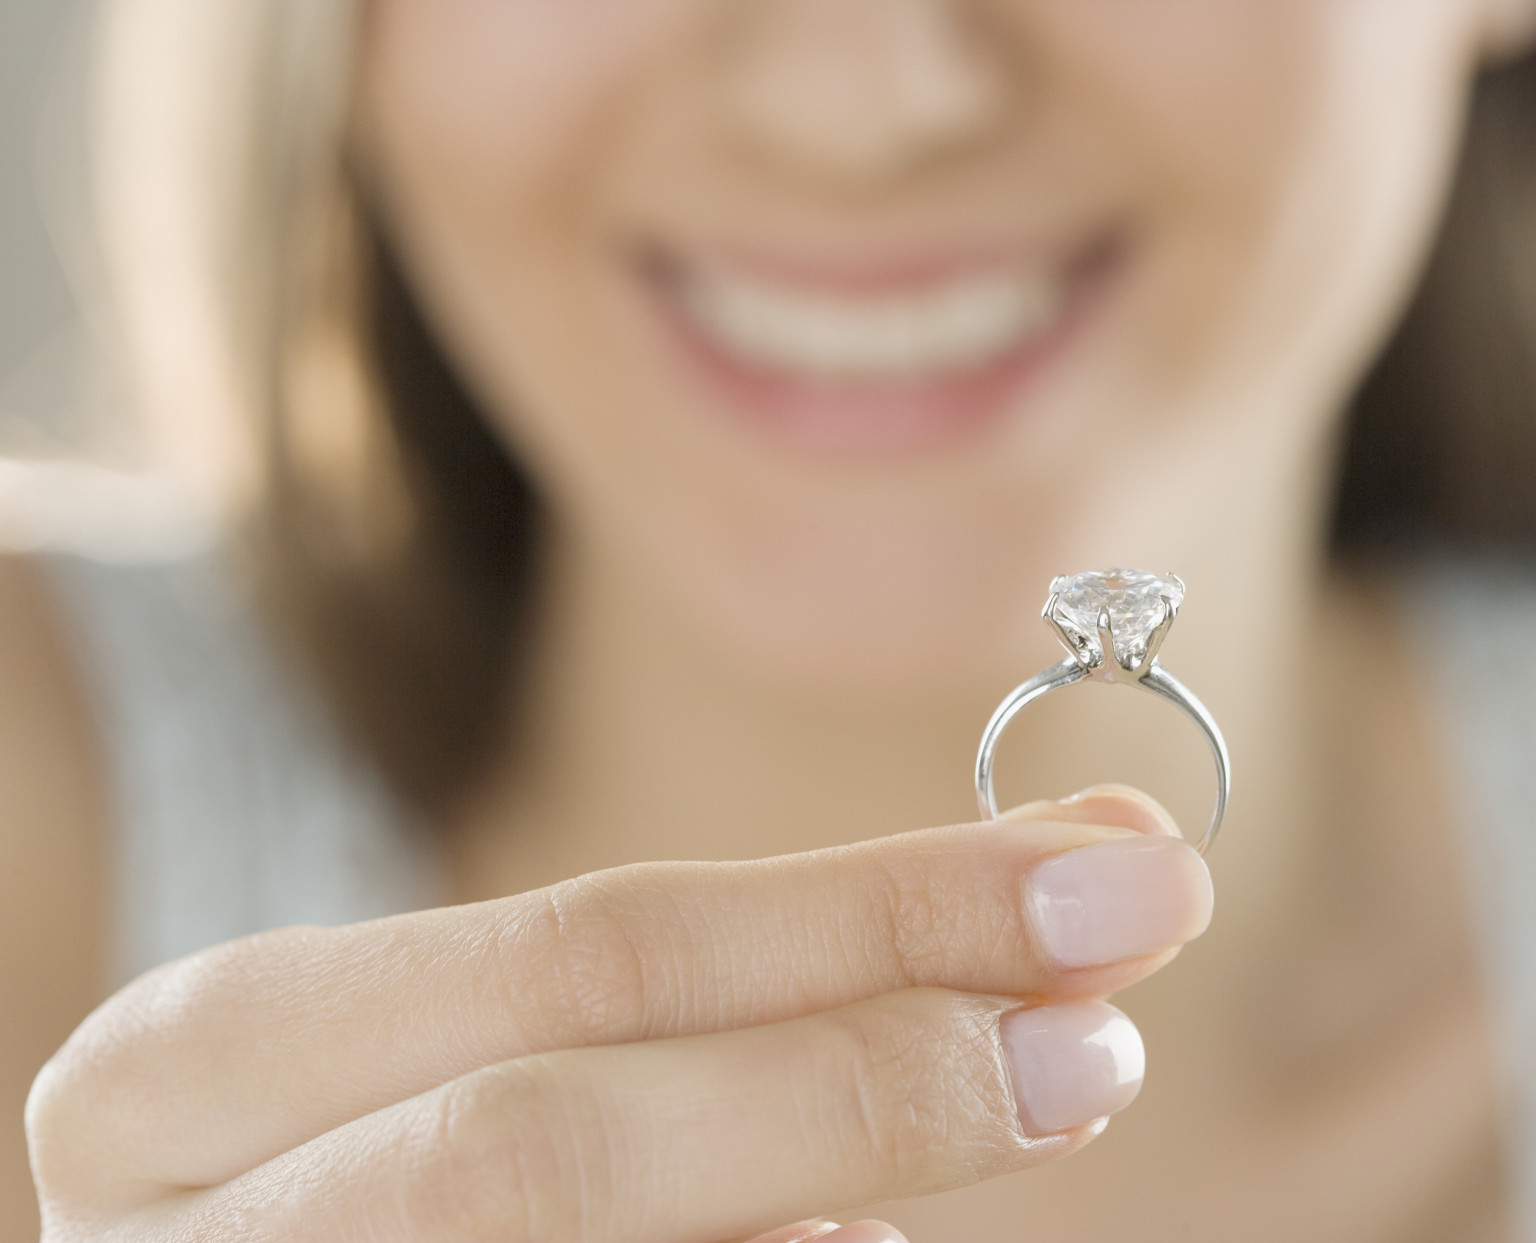 What Hand Does The Wedding Ring Go On In Japan